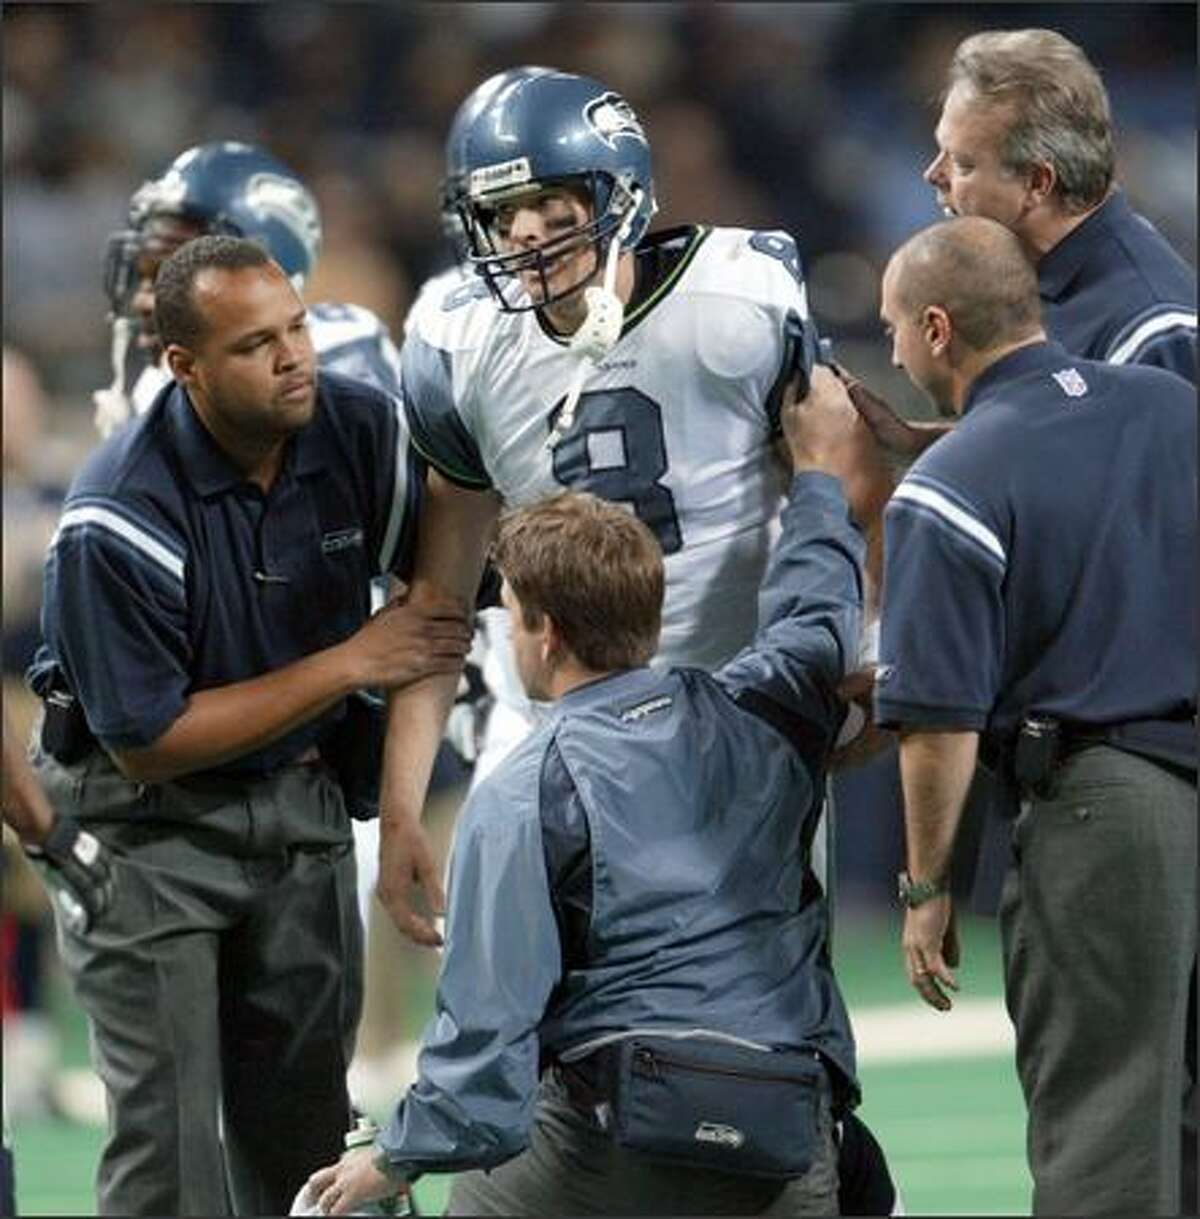 Matt Hasselbeck needed help getting to his feet after getting hit on the team's final drive. The Seahawks quarterback was 21-for-37 passing for 246 yards with one TD.